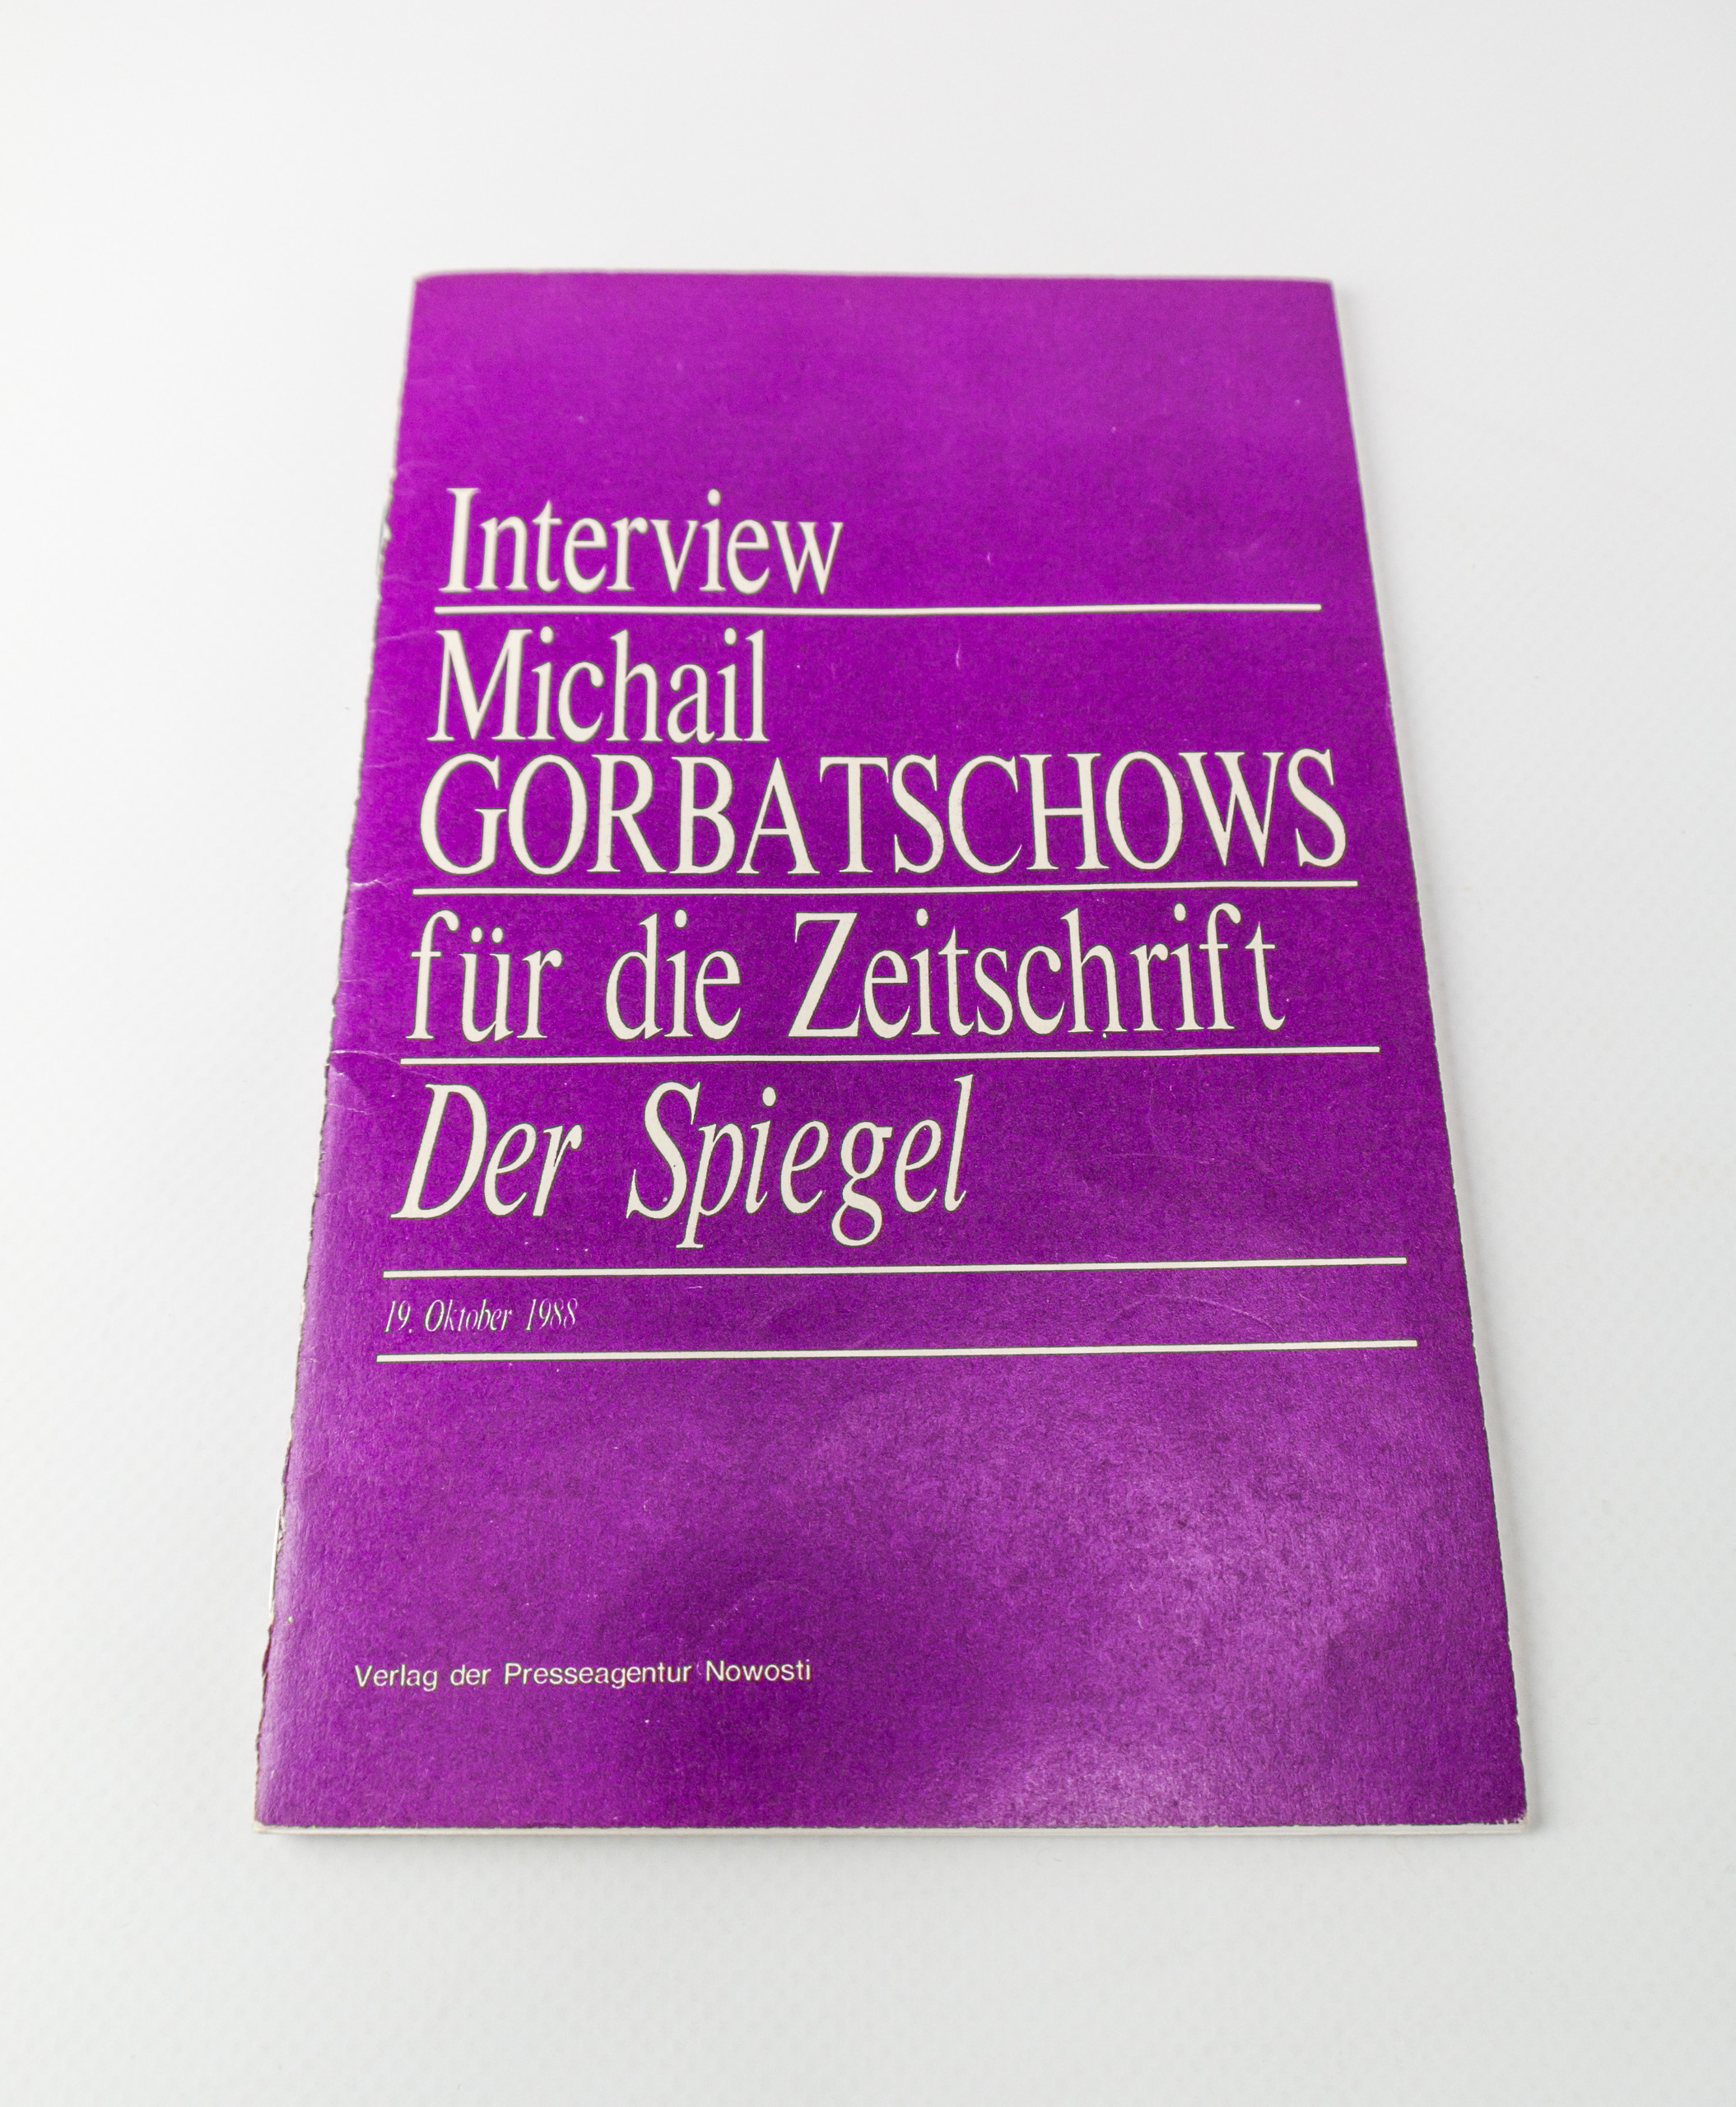 interview gorbatschow mit dem spiegel 1988 ddr museum berlin. Black Bedroom Furniture Sets. Home Design Ideas